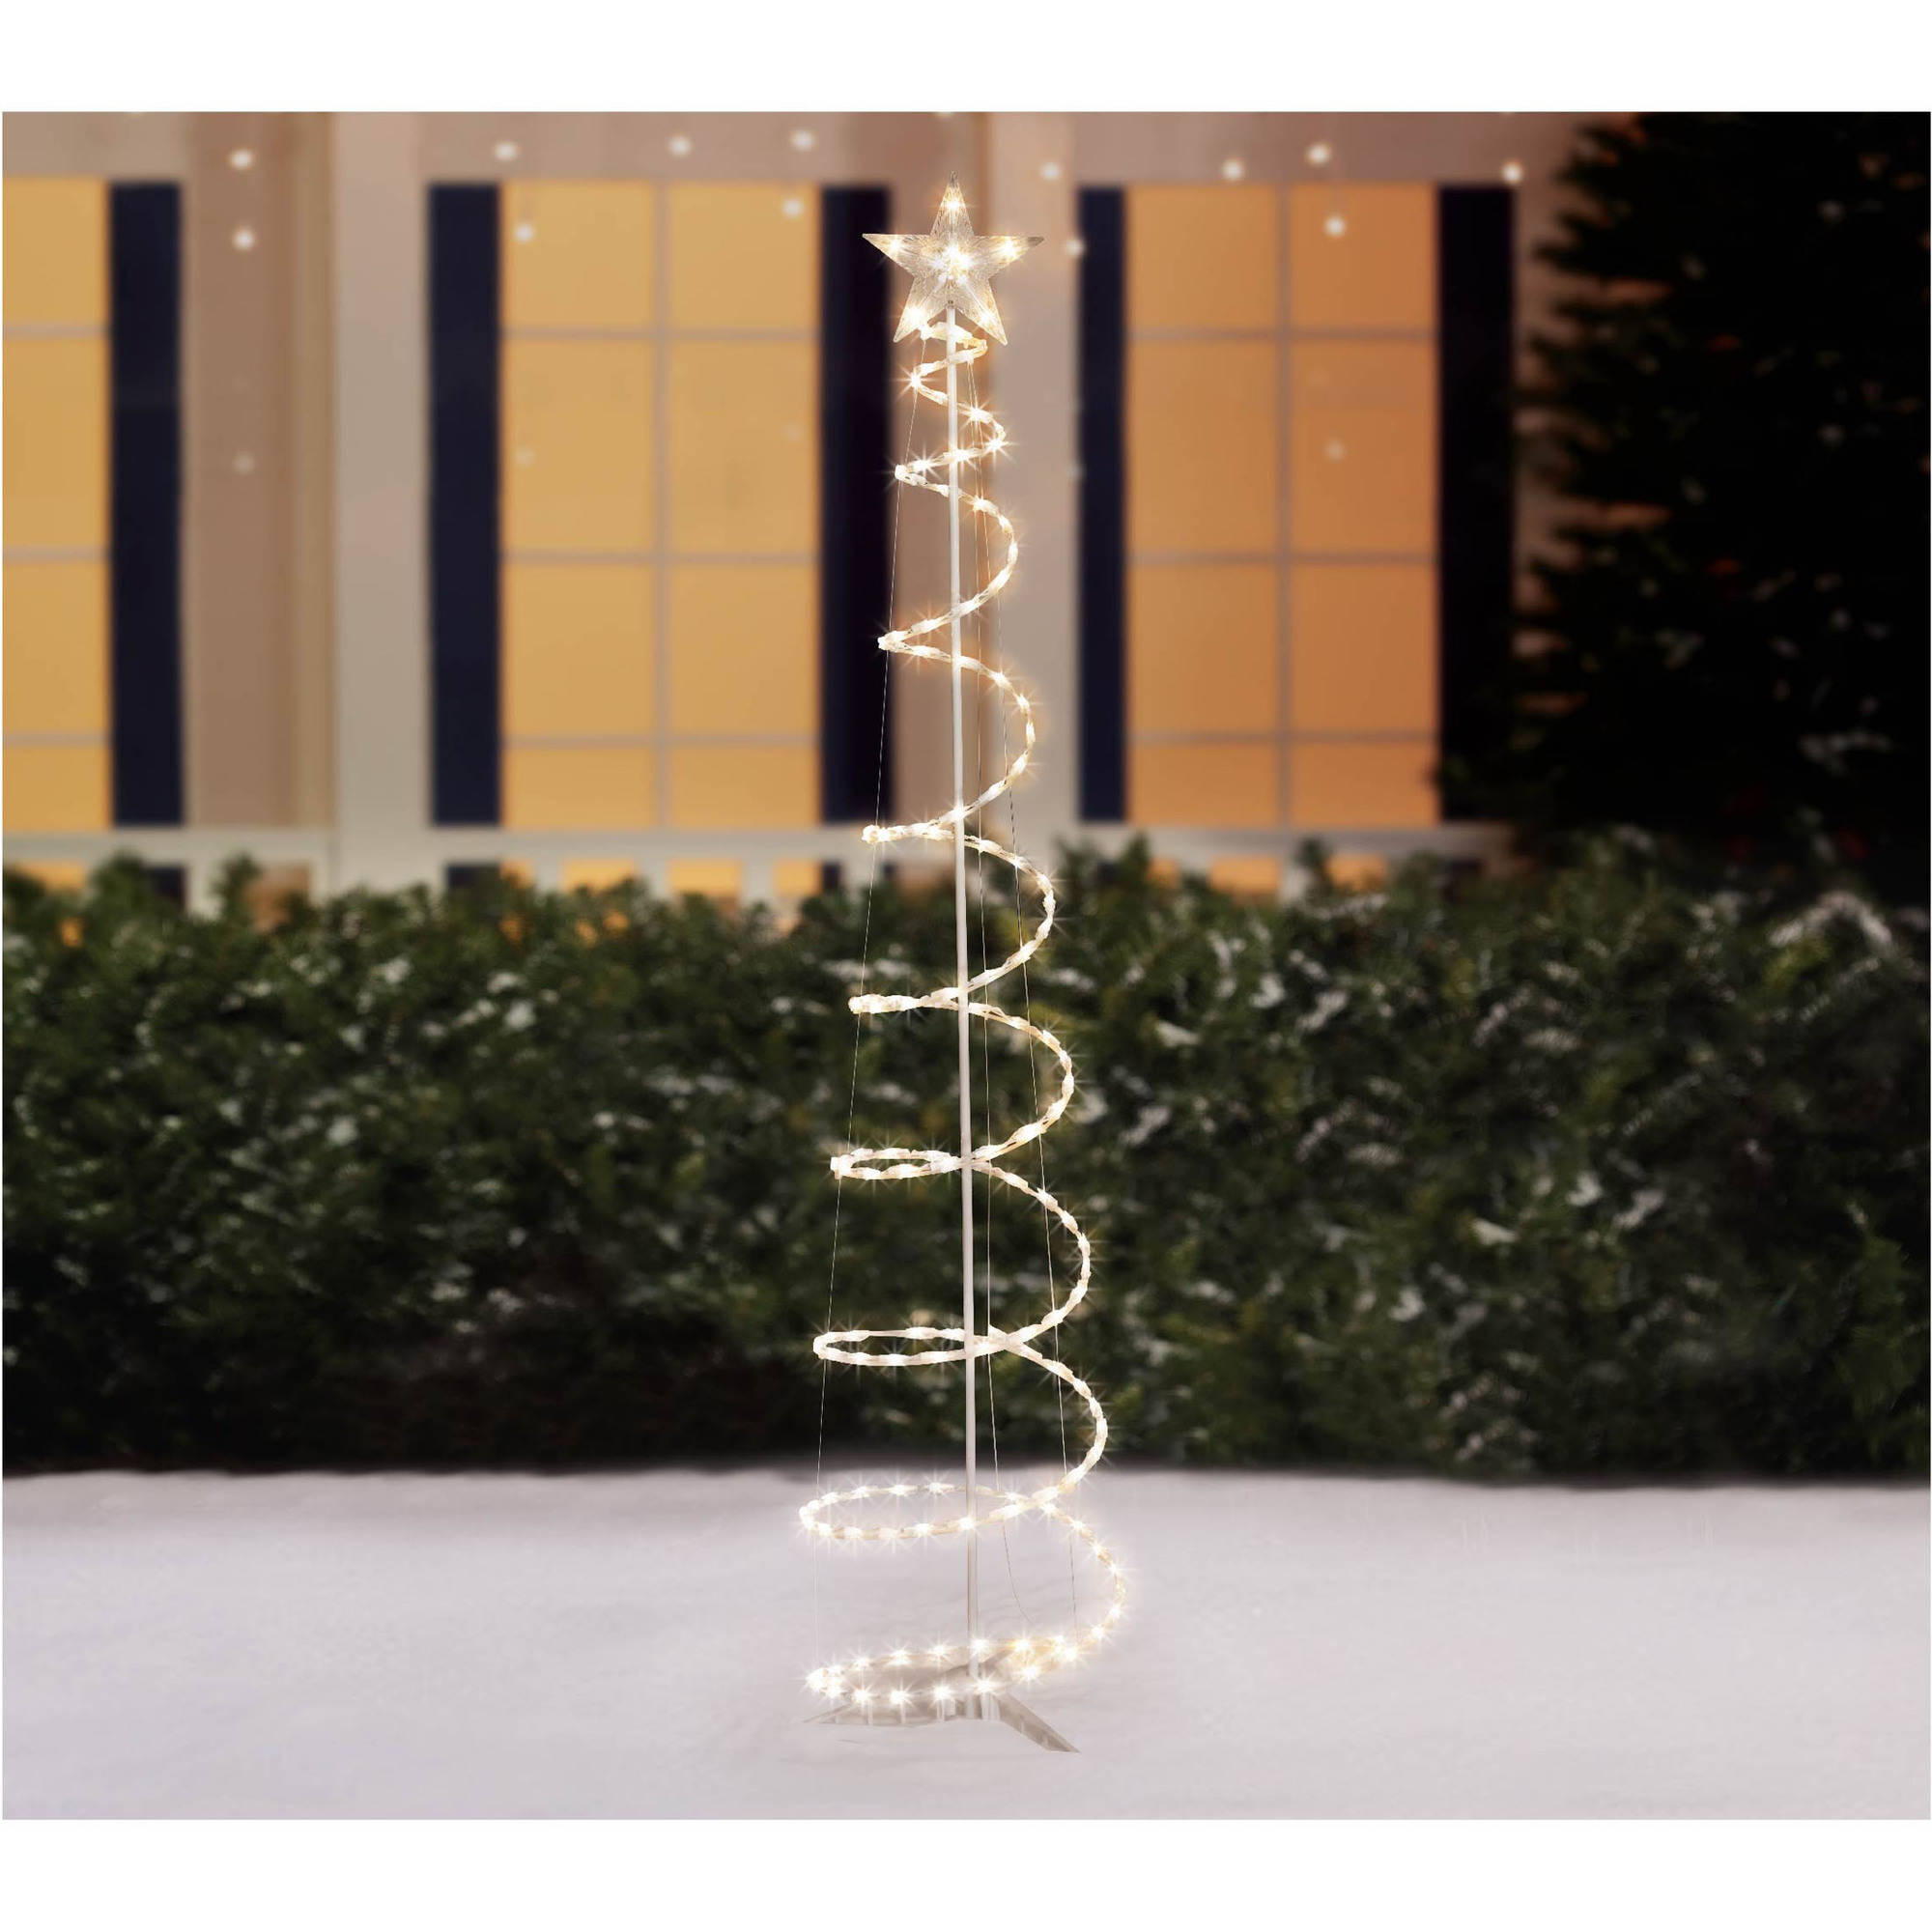 Holiday Time 6' Lighted Spiral Christmas Tree Sculpture, Clear